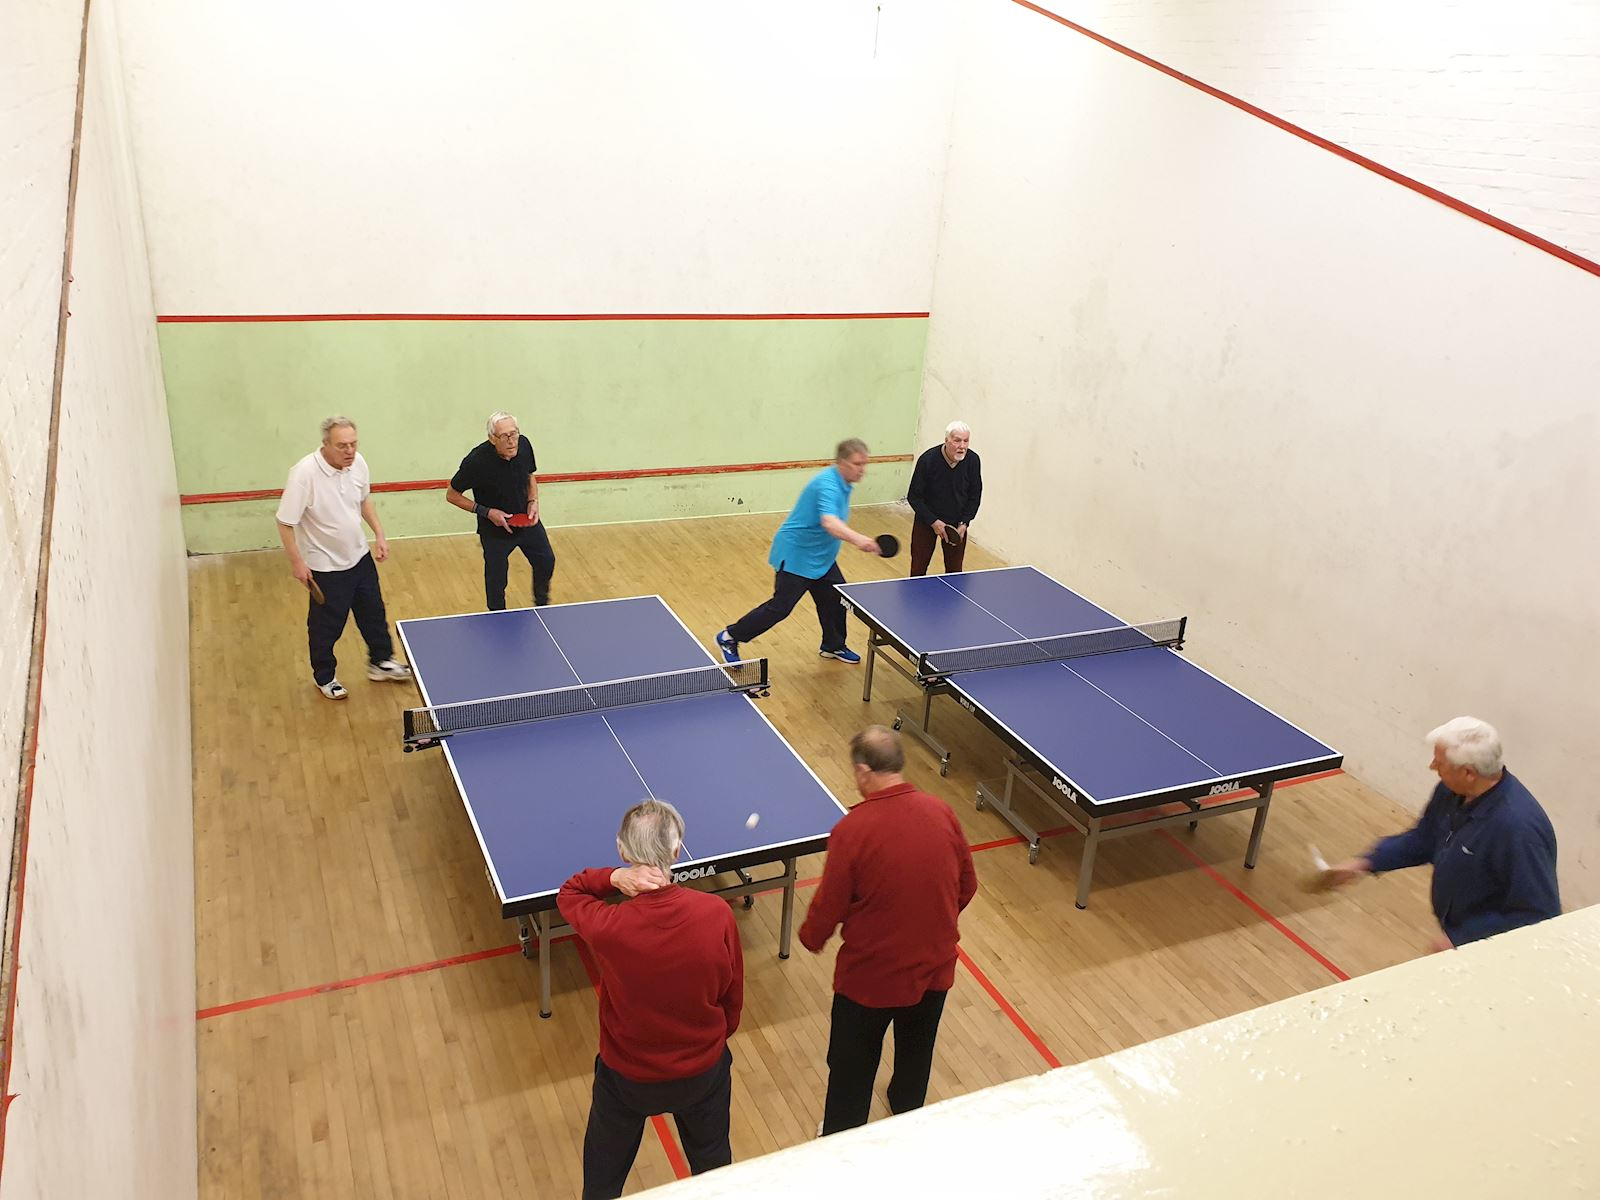 Indoor table tennis 2